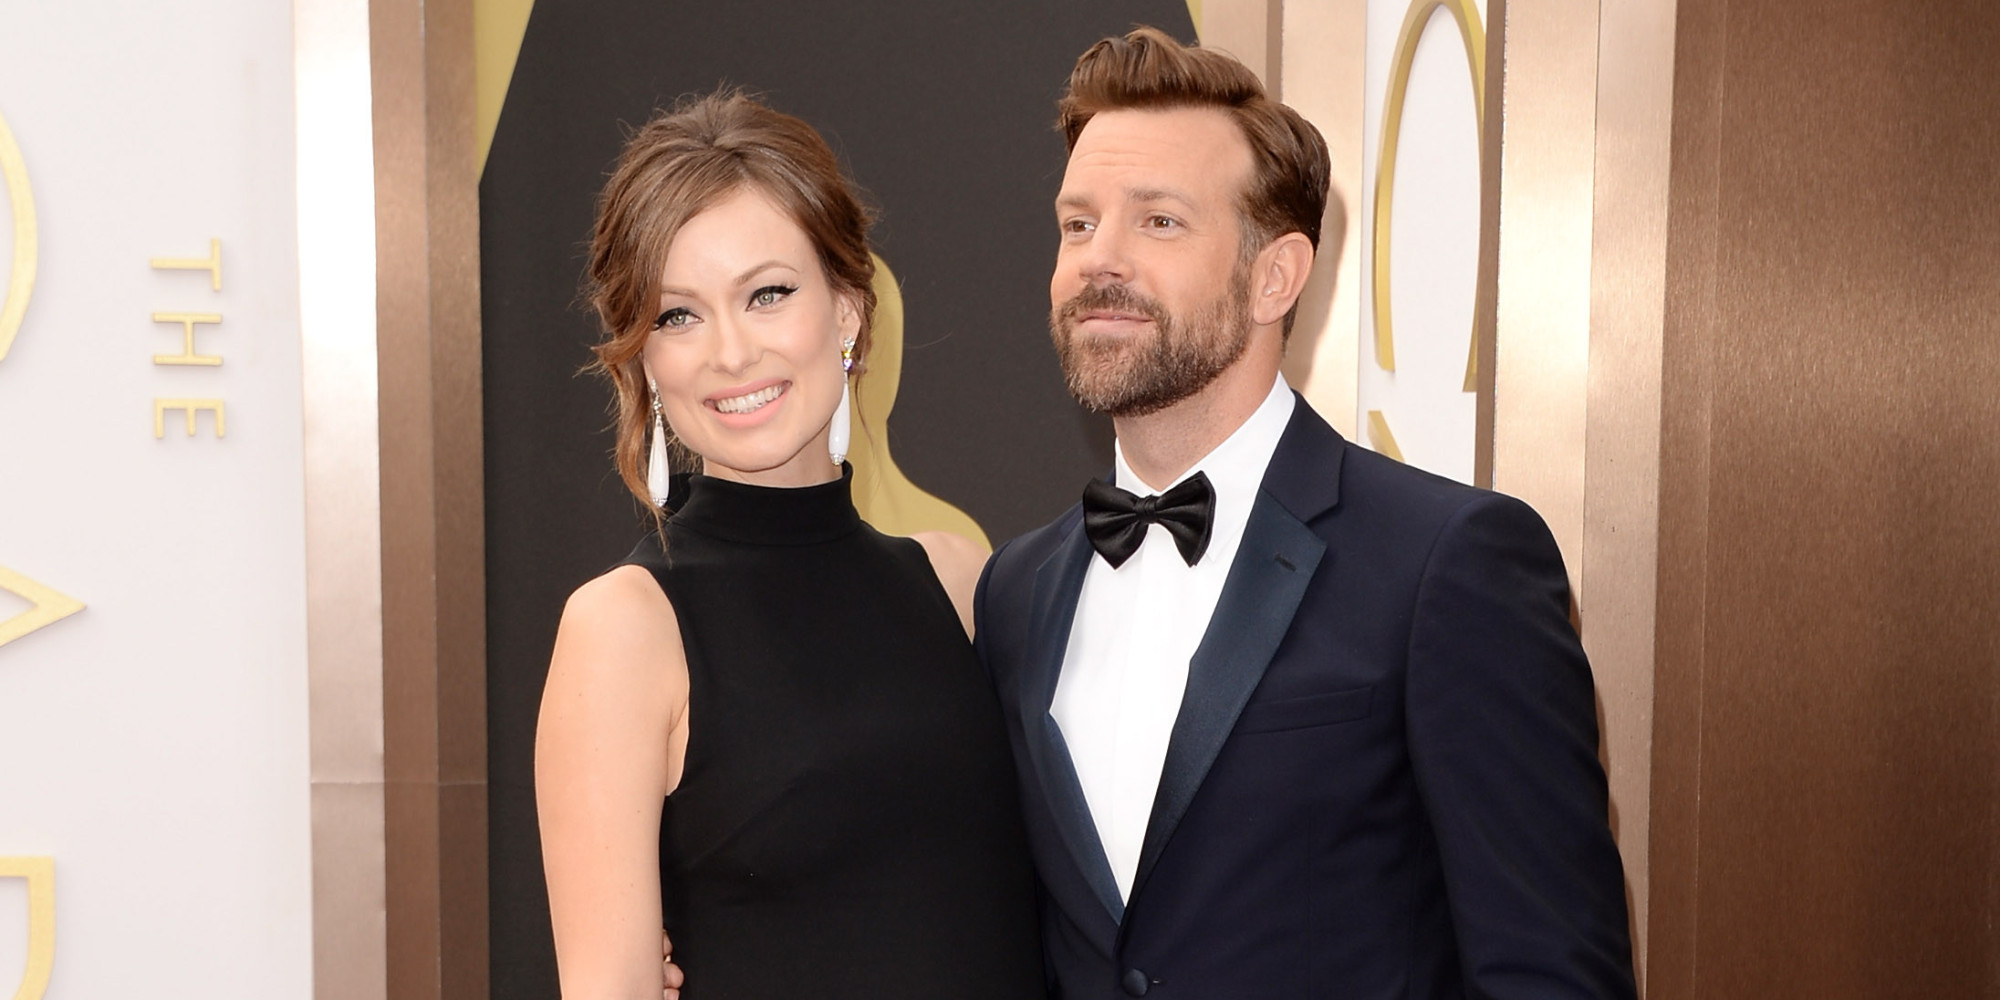 Olivia Wilde and Jason Sudeikis at the Oscars 2014